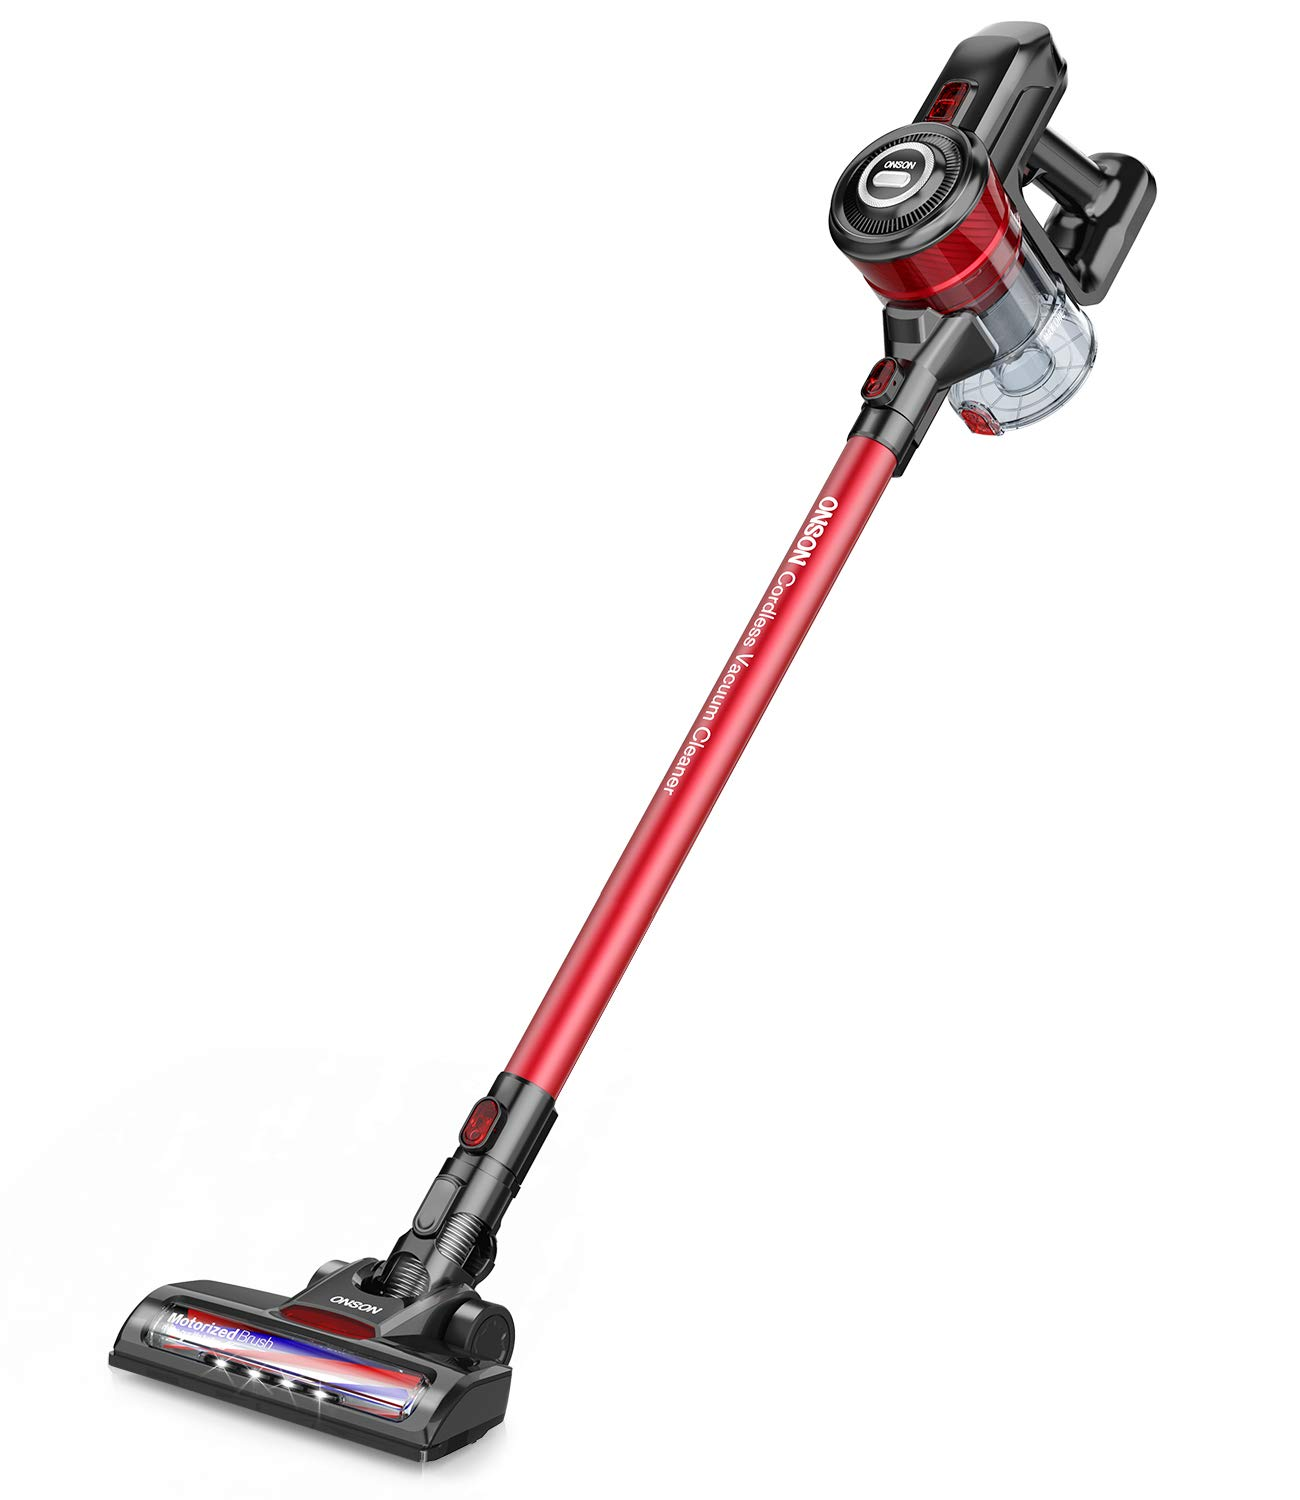 Cordless Vacuum, ONSON Stick Vacuum Cleaner, Powerful Cleaning Lightweight Handheld Vacuum with Rechargeable Lithium Ion Battery by ONSON